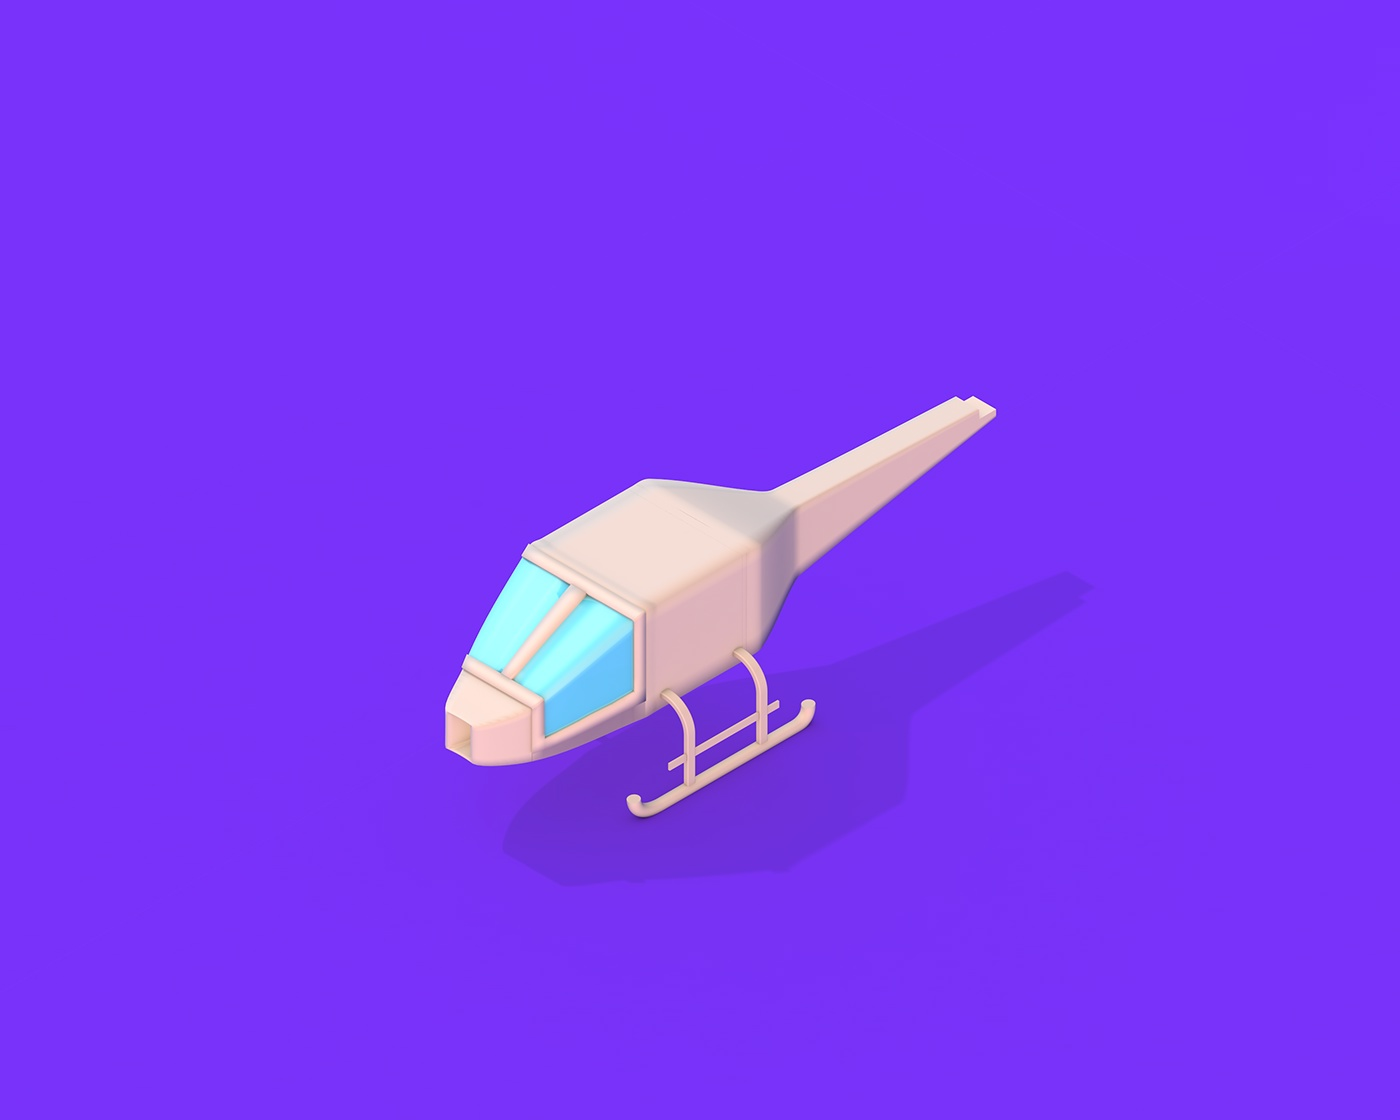 c4d,cinema4d,3D,Isometric,lowpoly,helicopter,flat,modeling,ILLUSTRATION ,showreel